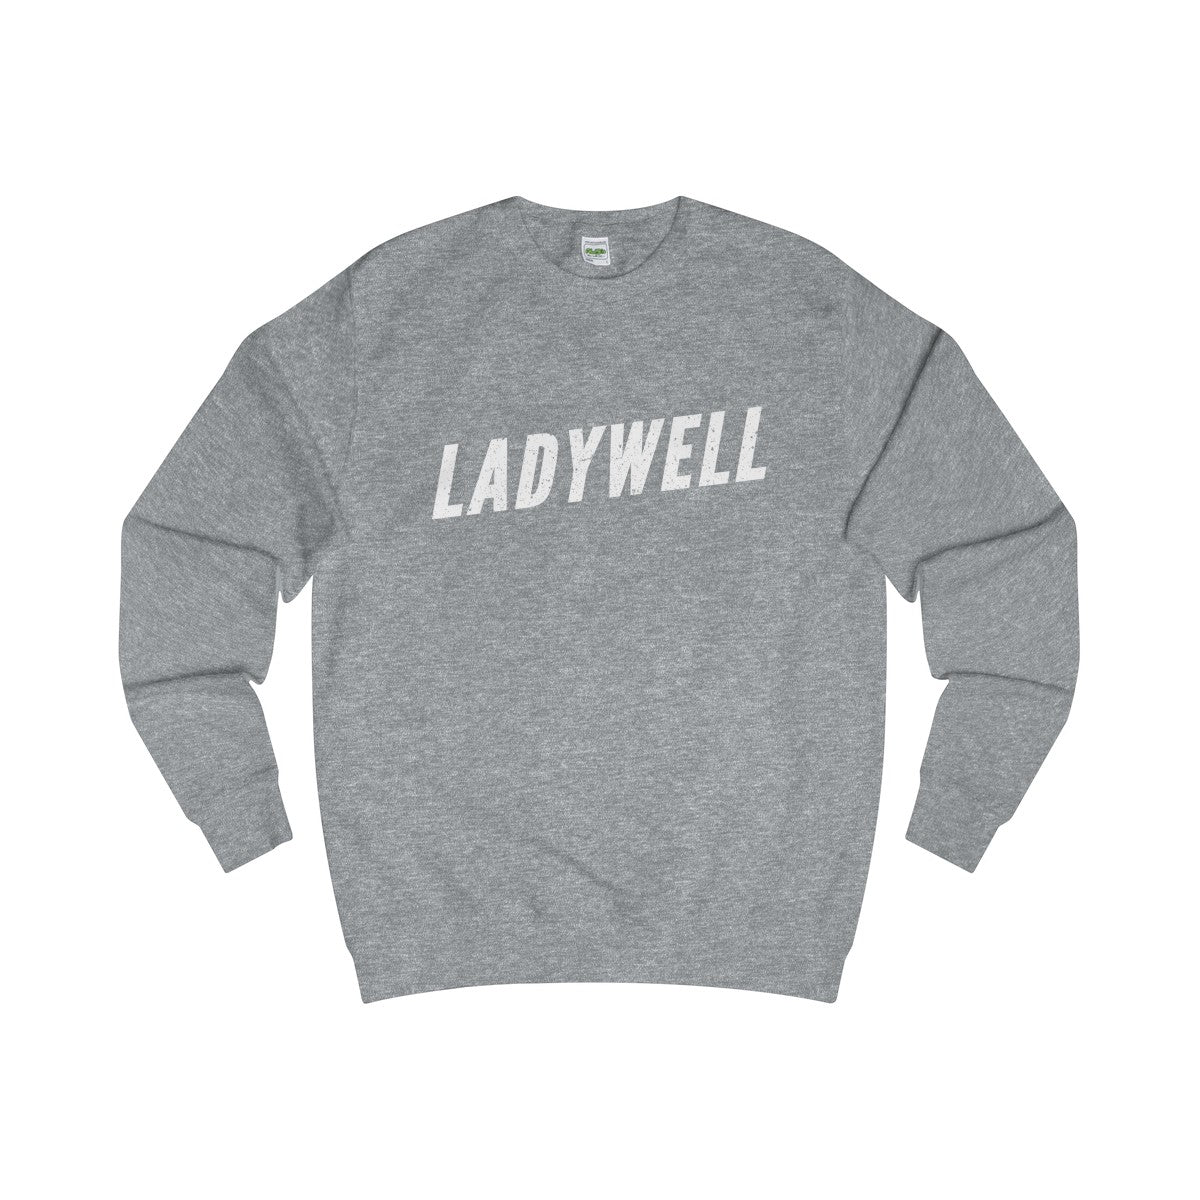 Ladywell Sweater